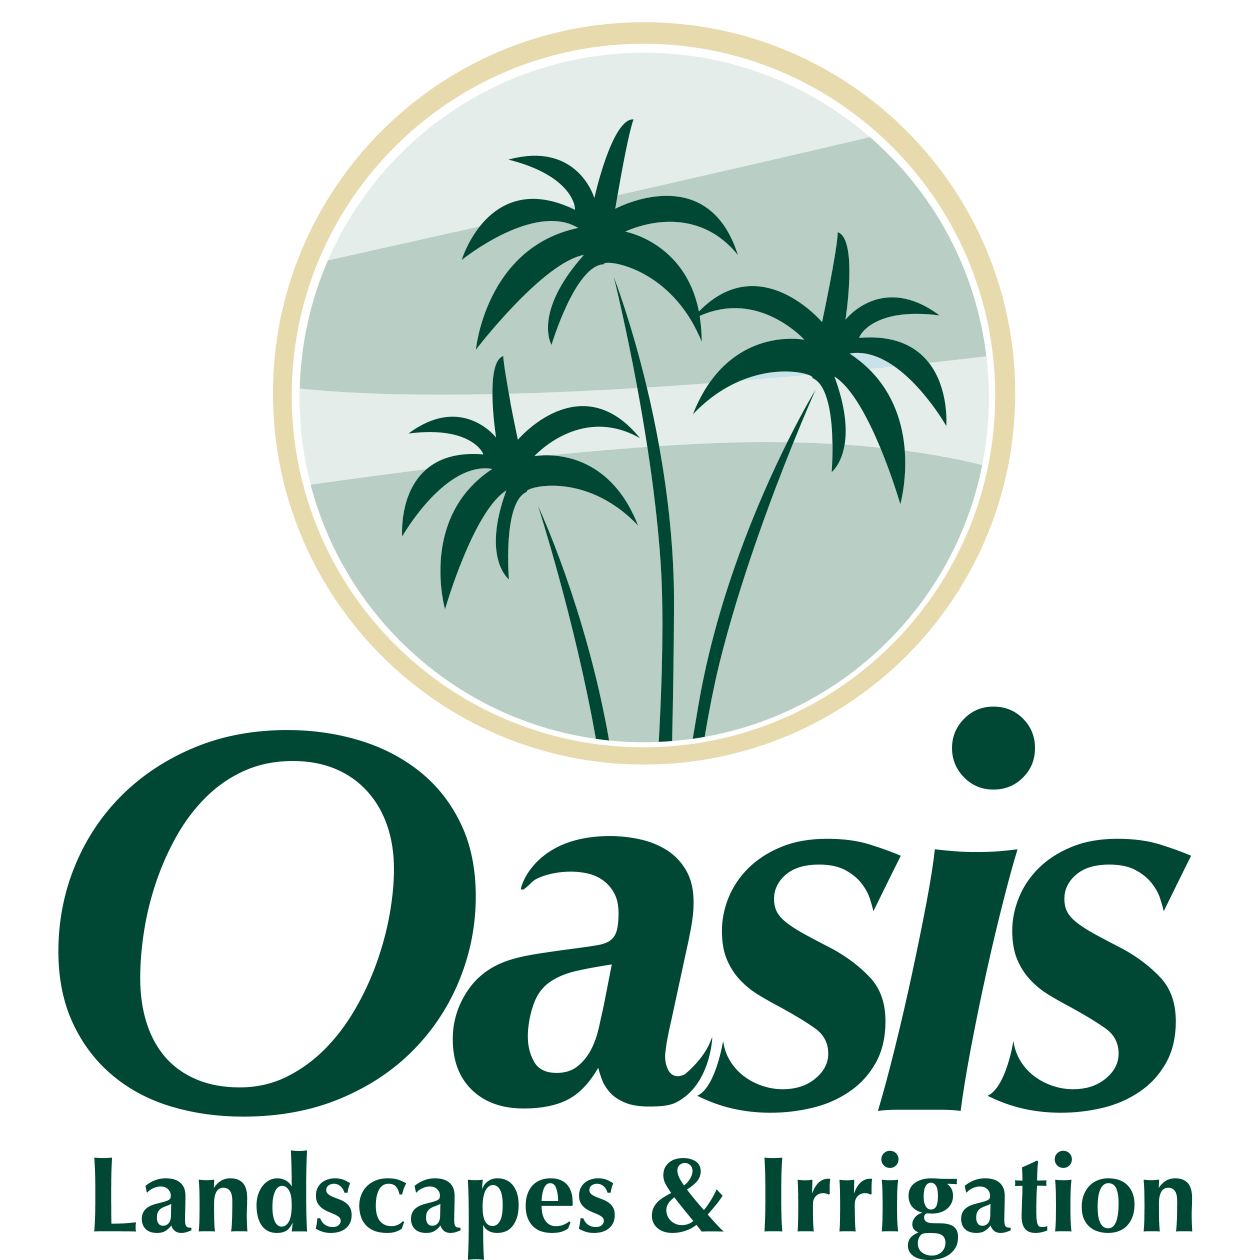 Oasis Landscapes and Irrigation in Atlanta Launches ... Oasis Logo Png